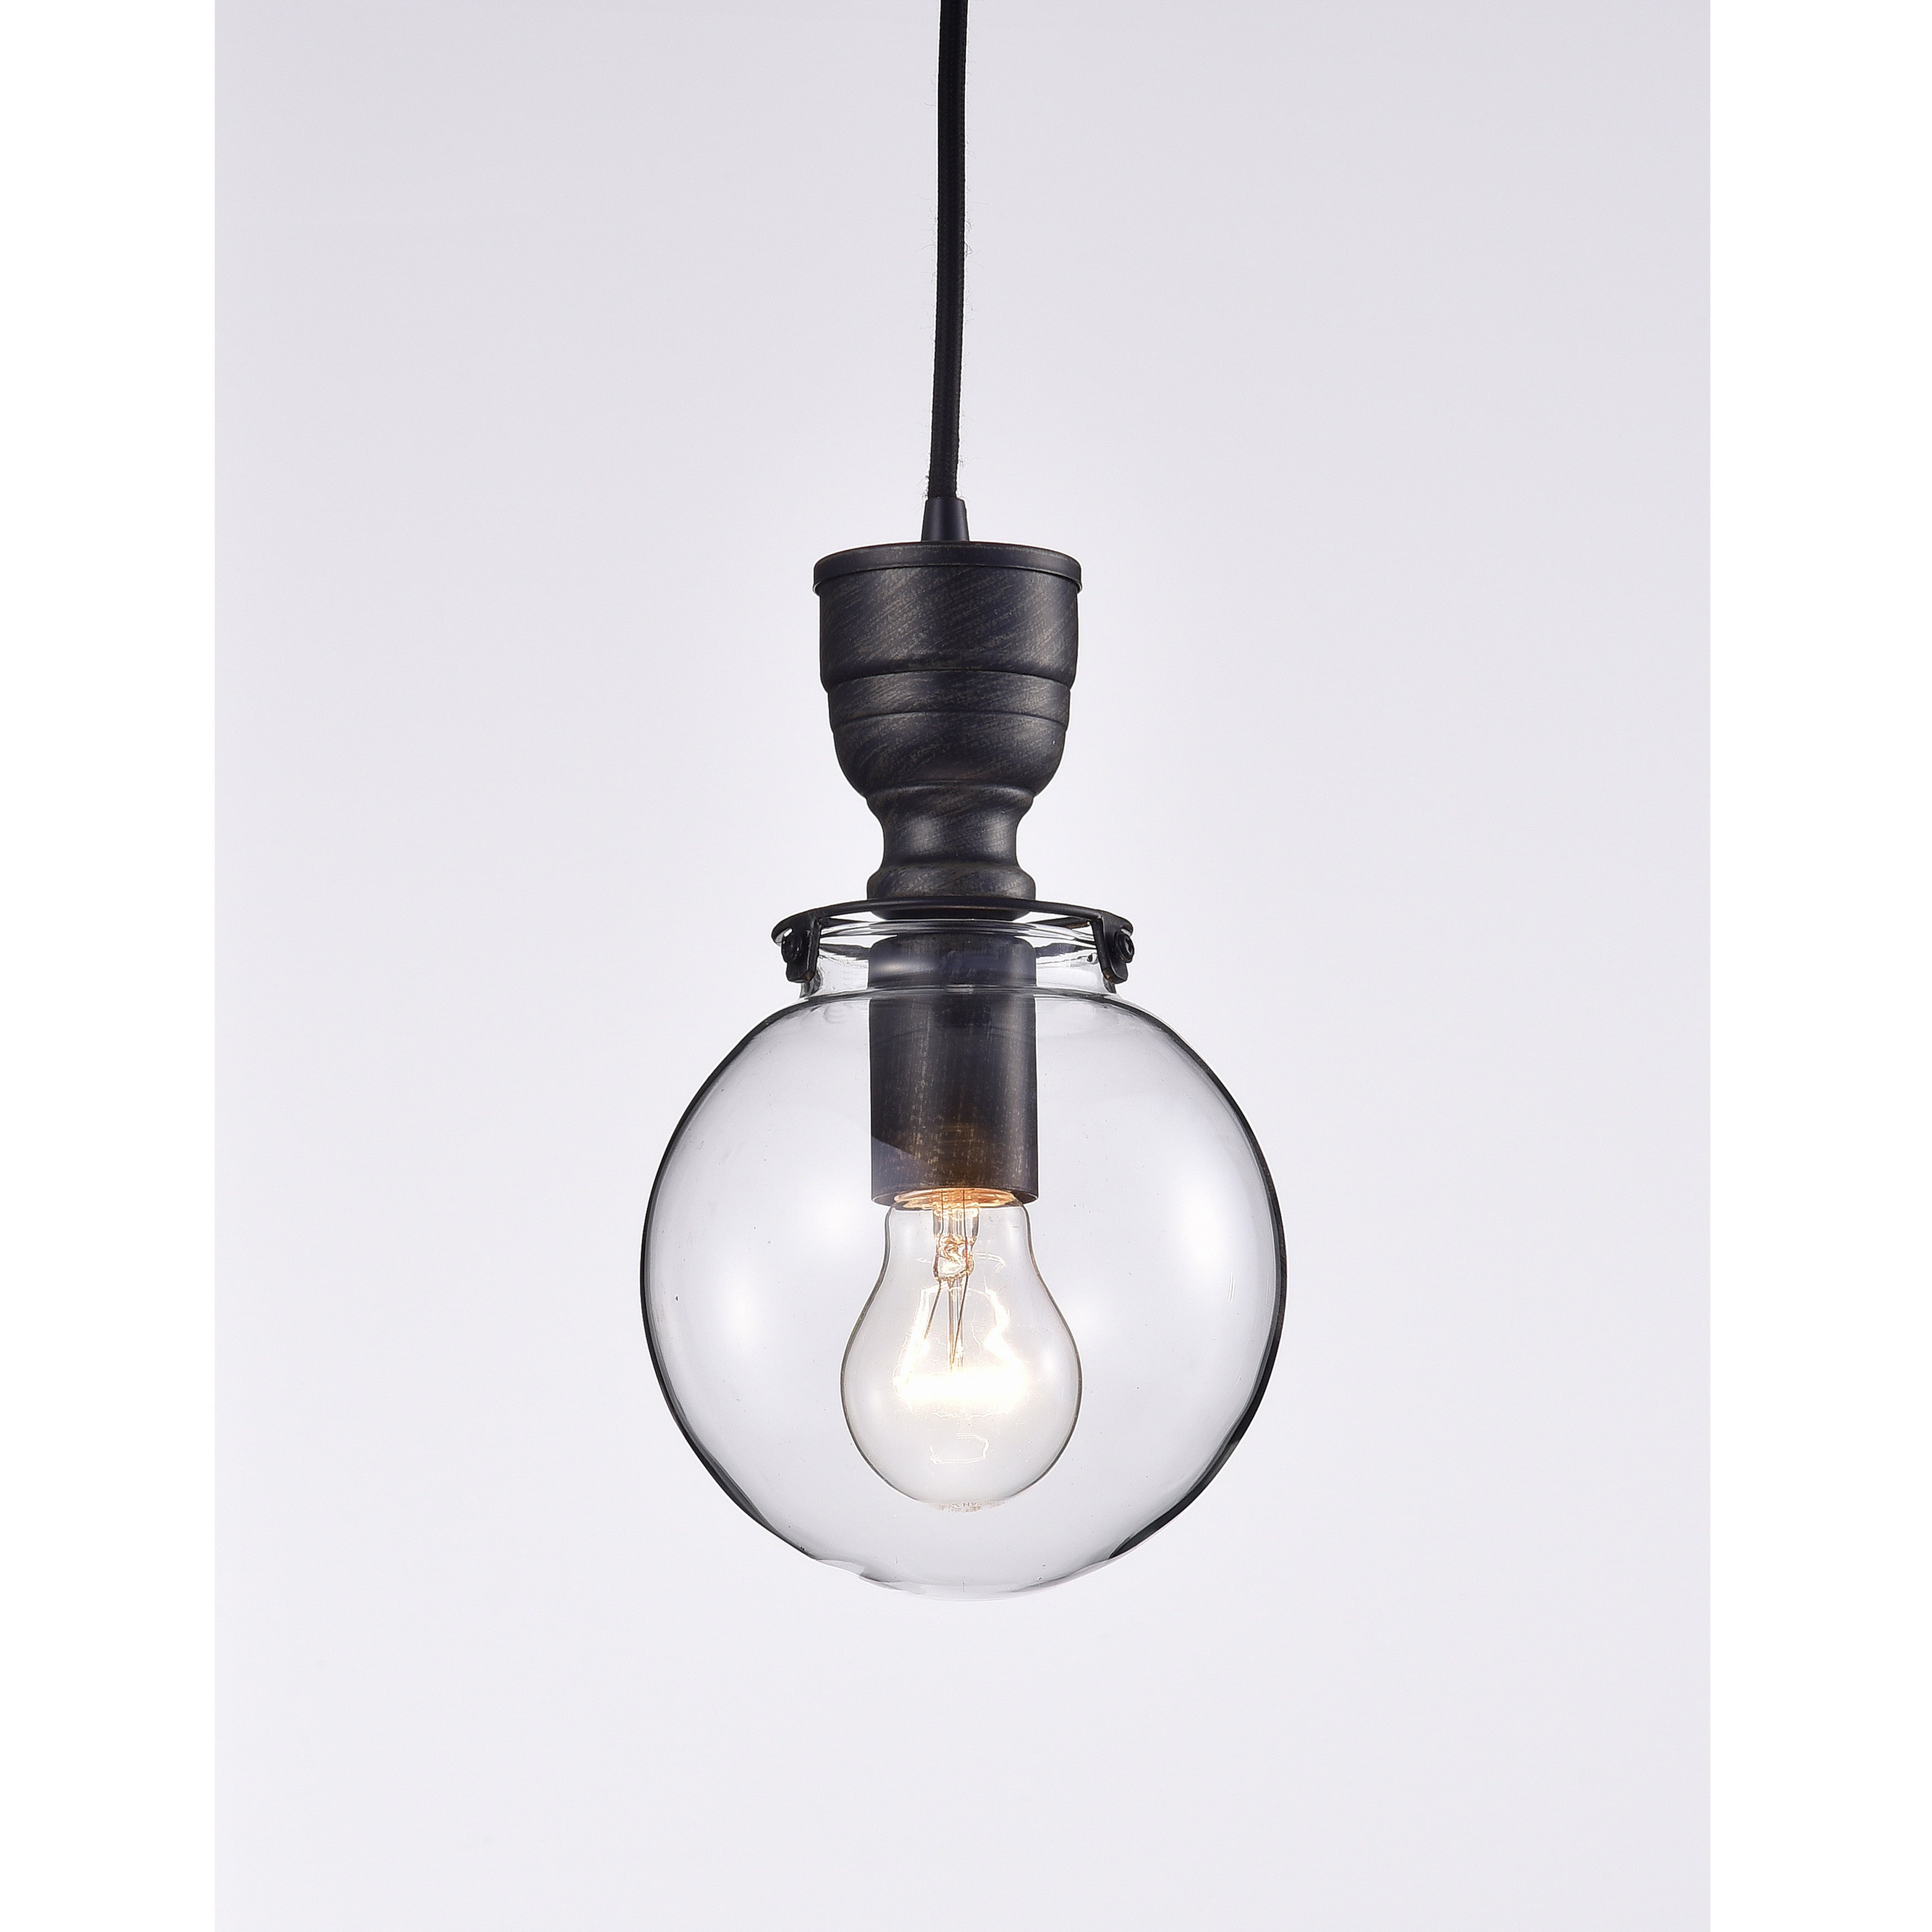 Luna mini clear glass globe pendant chandelier in antique black luna mini clear glass globe pendant chandelier in antique black free shipping on orders over 45 overstock 22467857 aloadofball Image collections